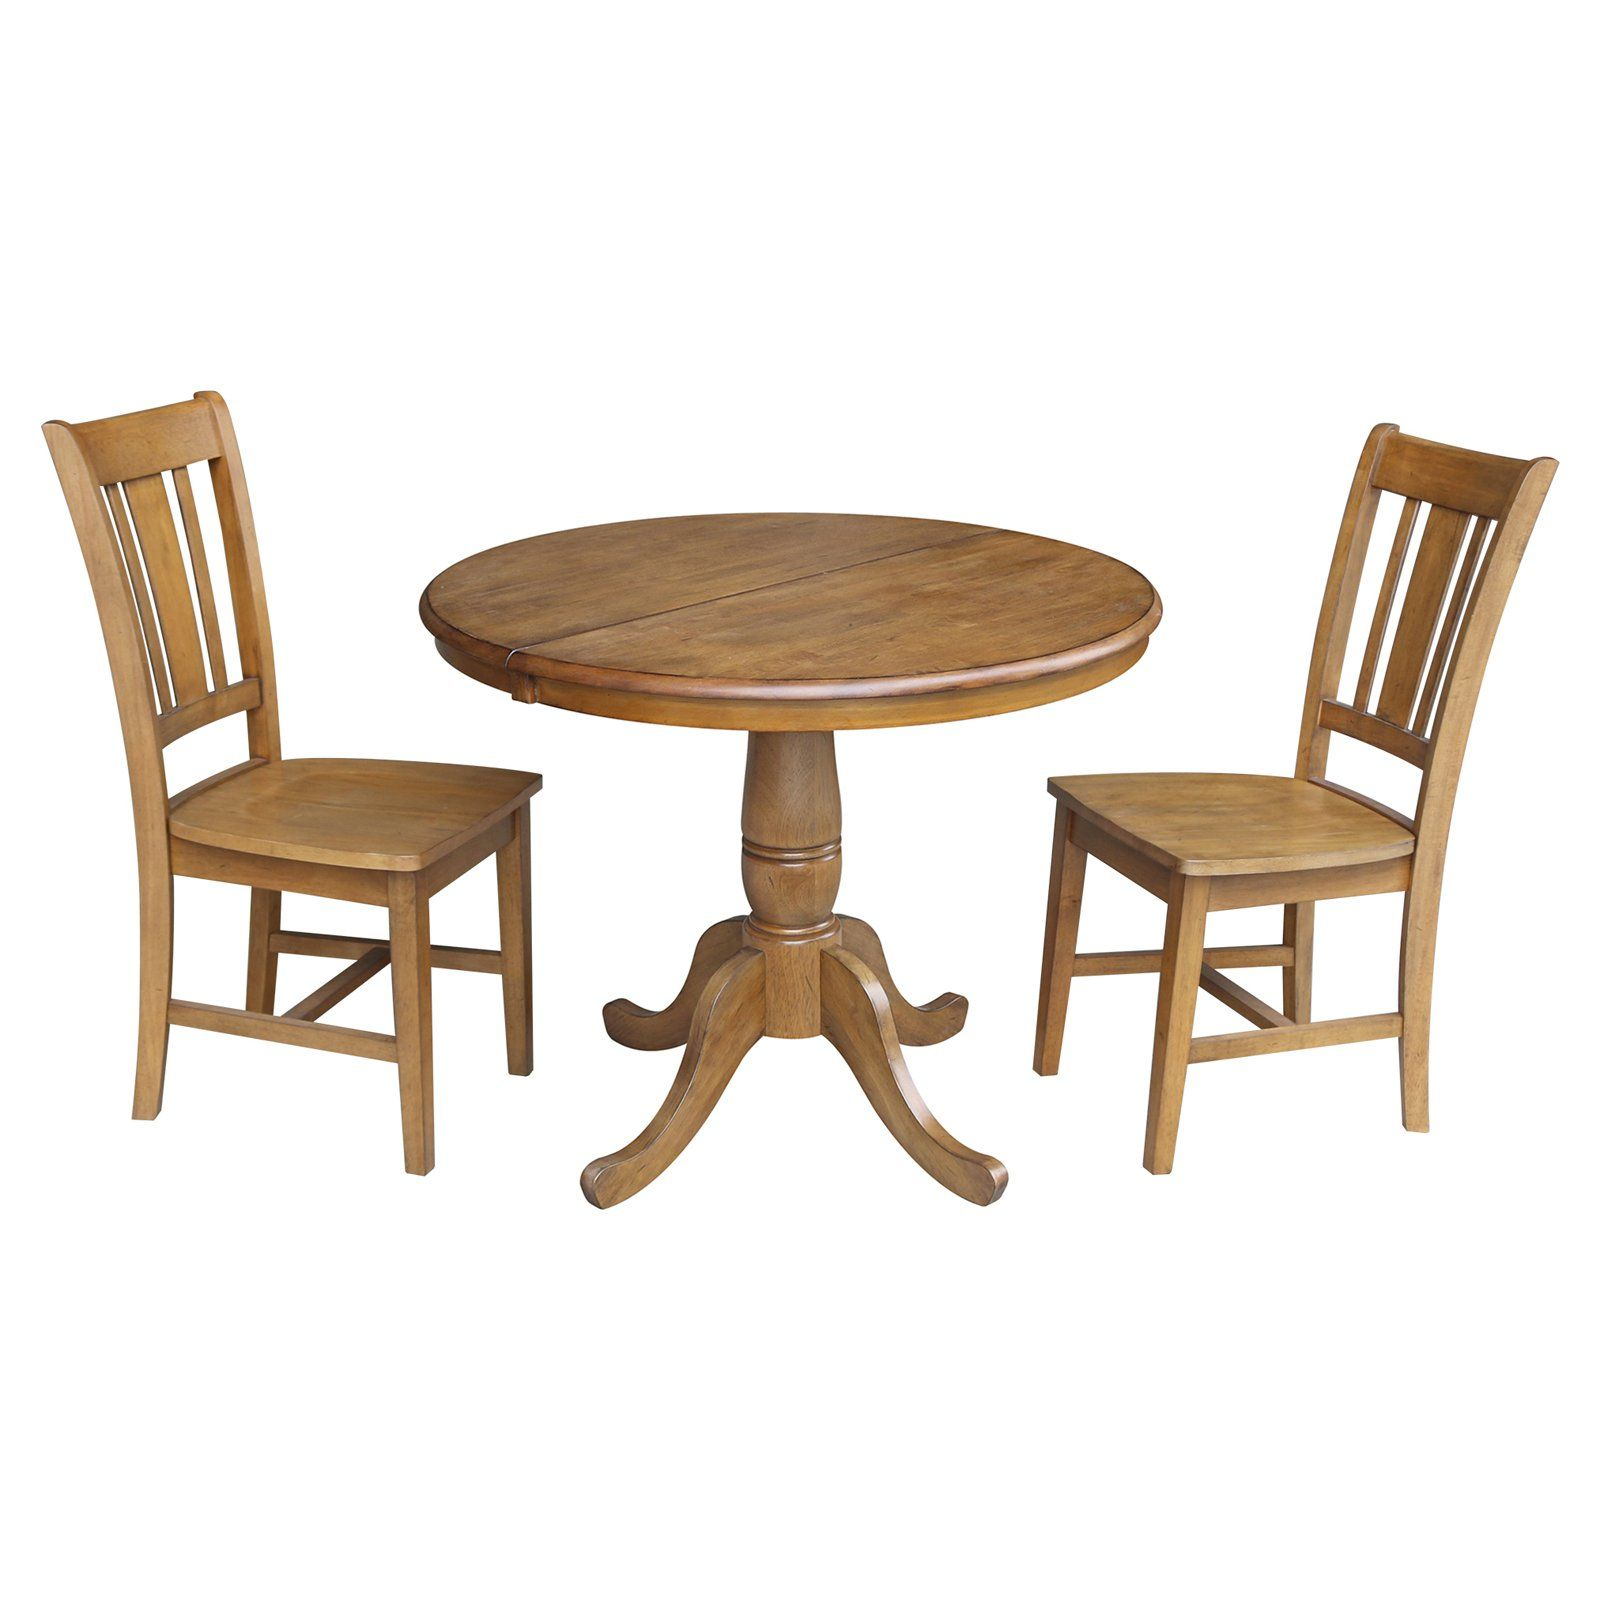 Sensational International Concepts Straight Pedestal Dining Table Set Caraccident5 Cool Chair Designs And Ideas Caraccident5Info